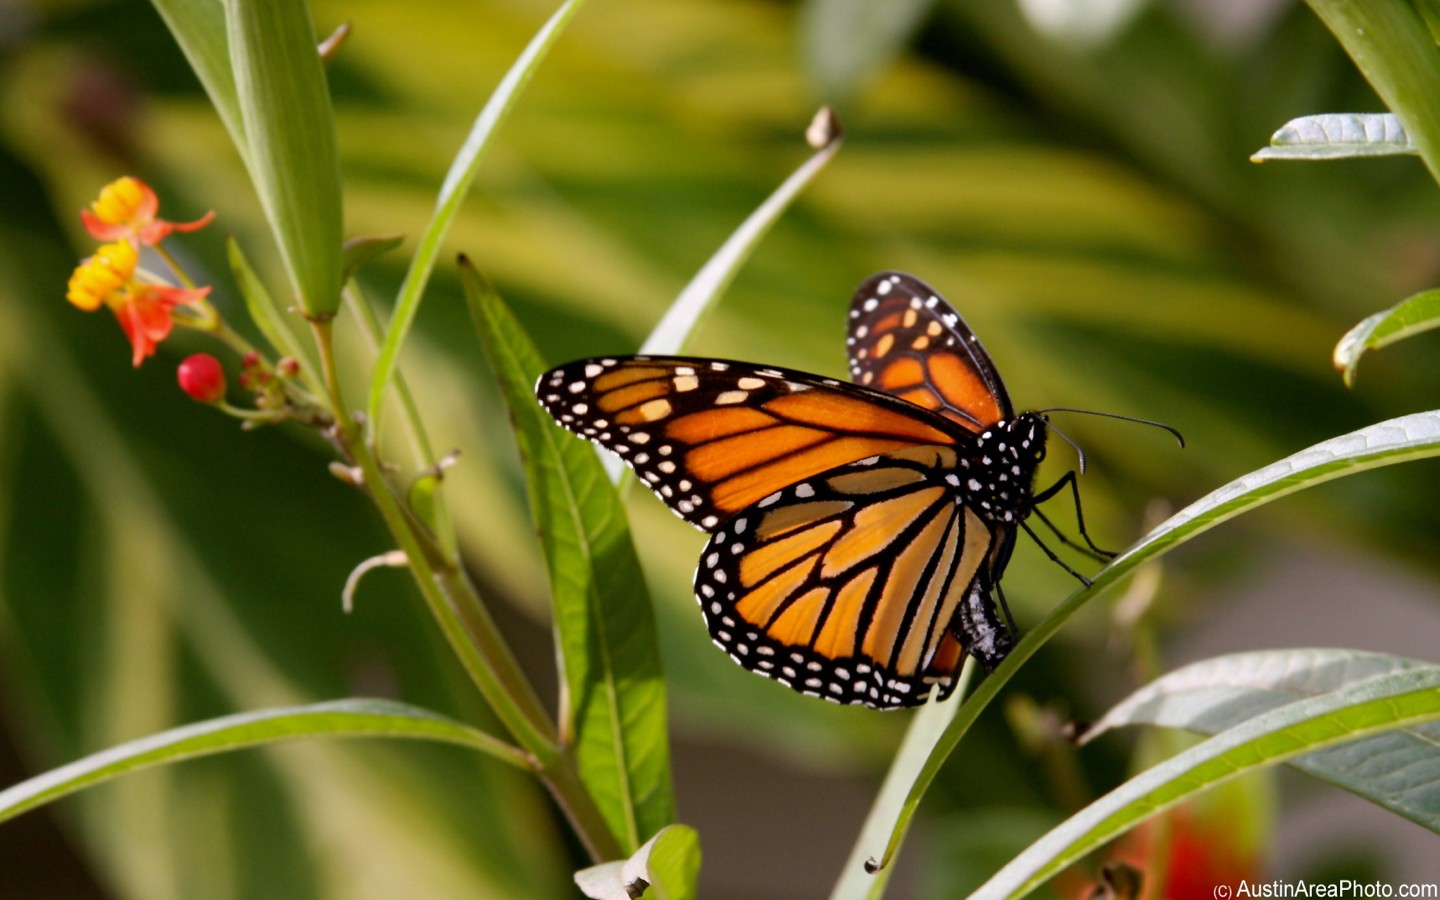 Efforts to conserve Monarch butterflies misguided 1440x900